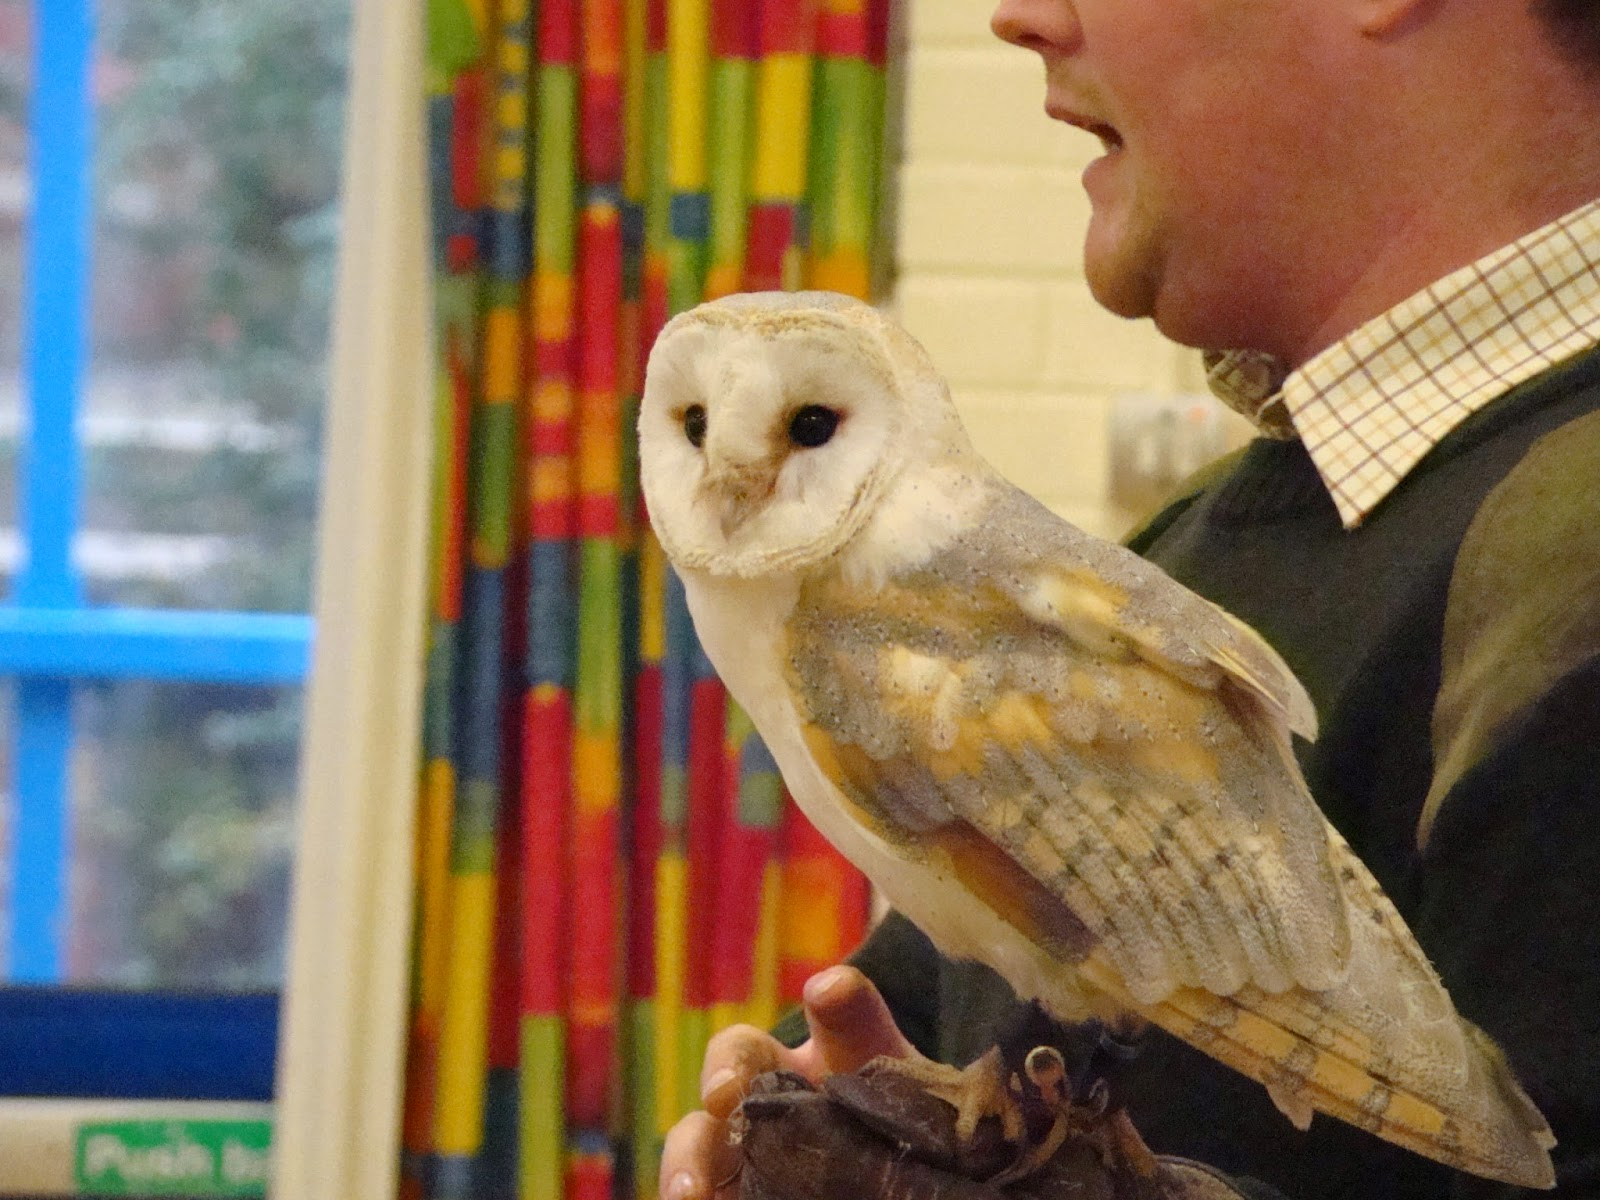 Hitcham's Blog: Barn Owl in School Assembly